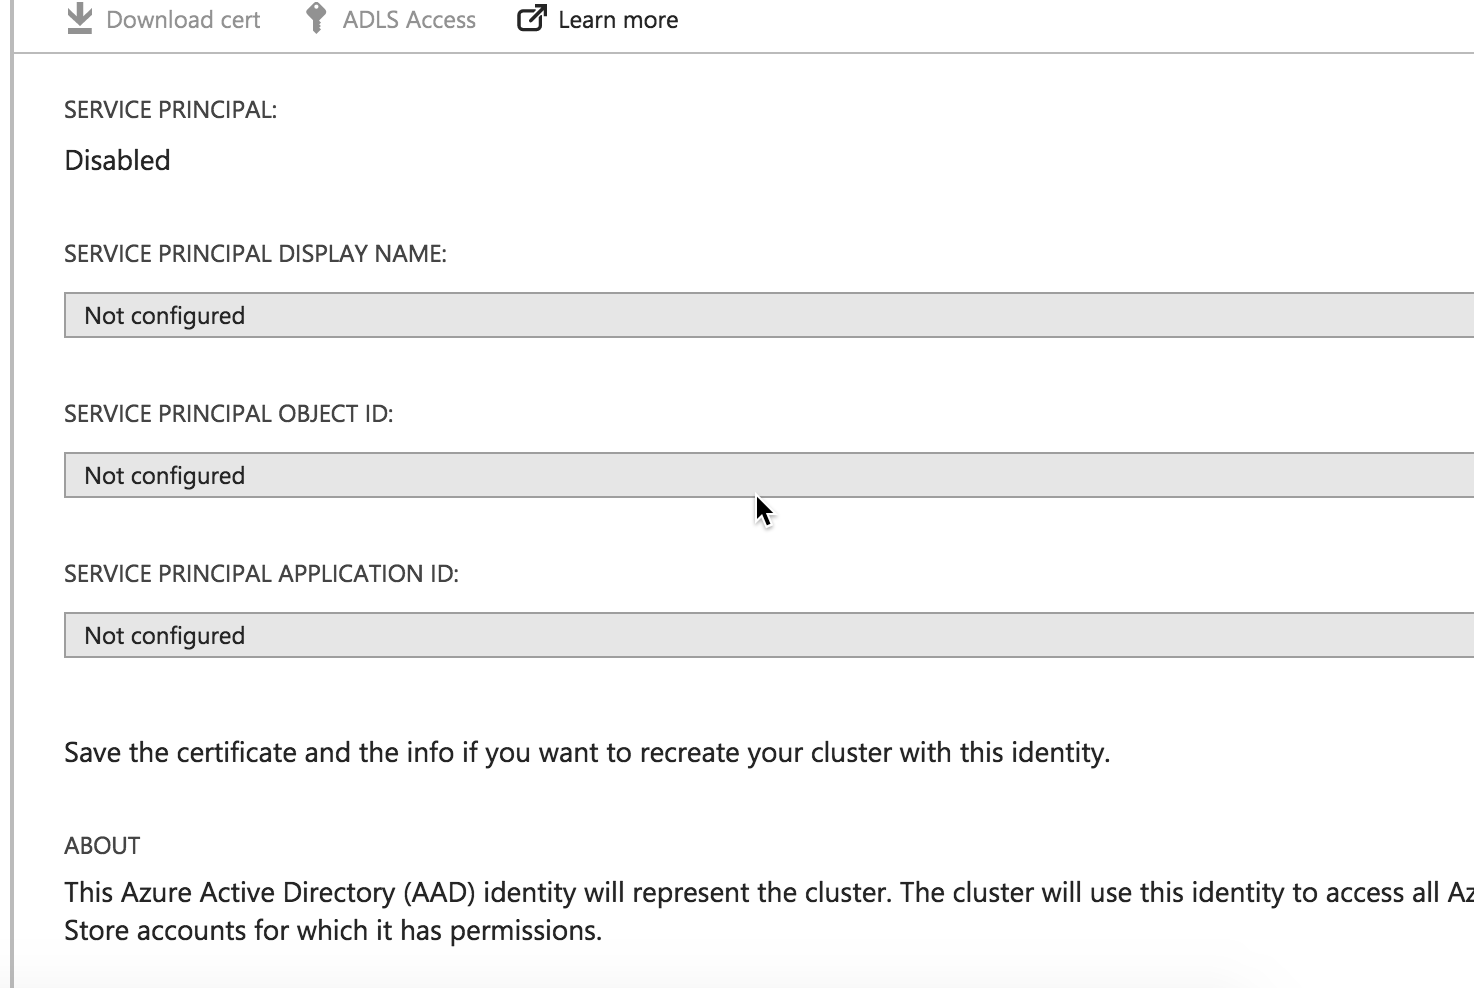 ADF v2 Error submitting action scripts and accessing ADLS